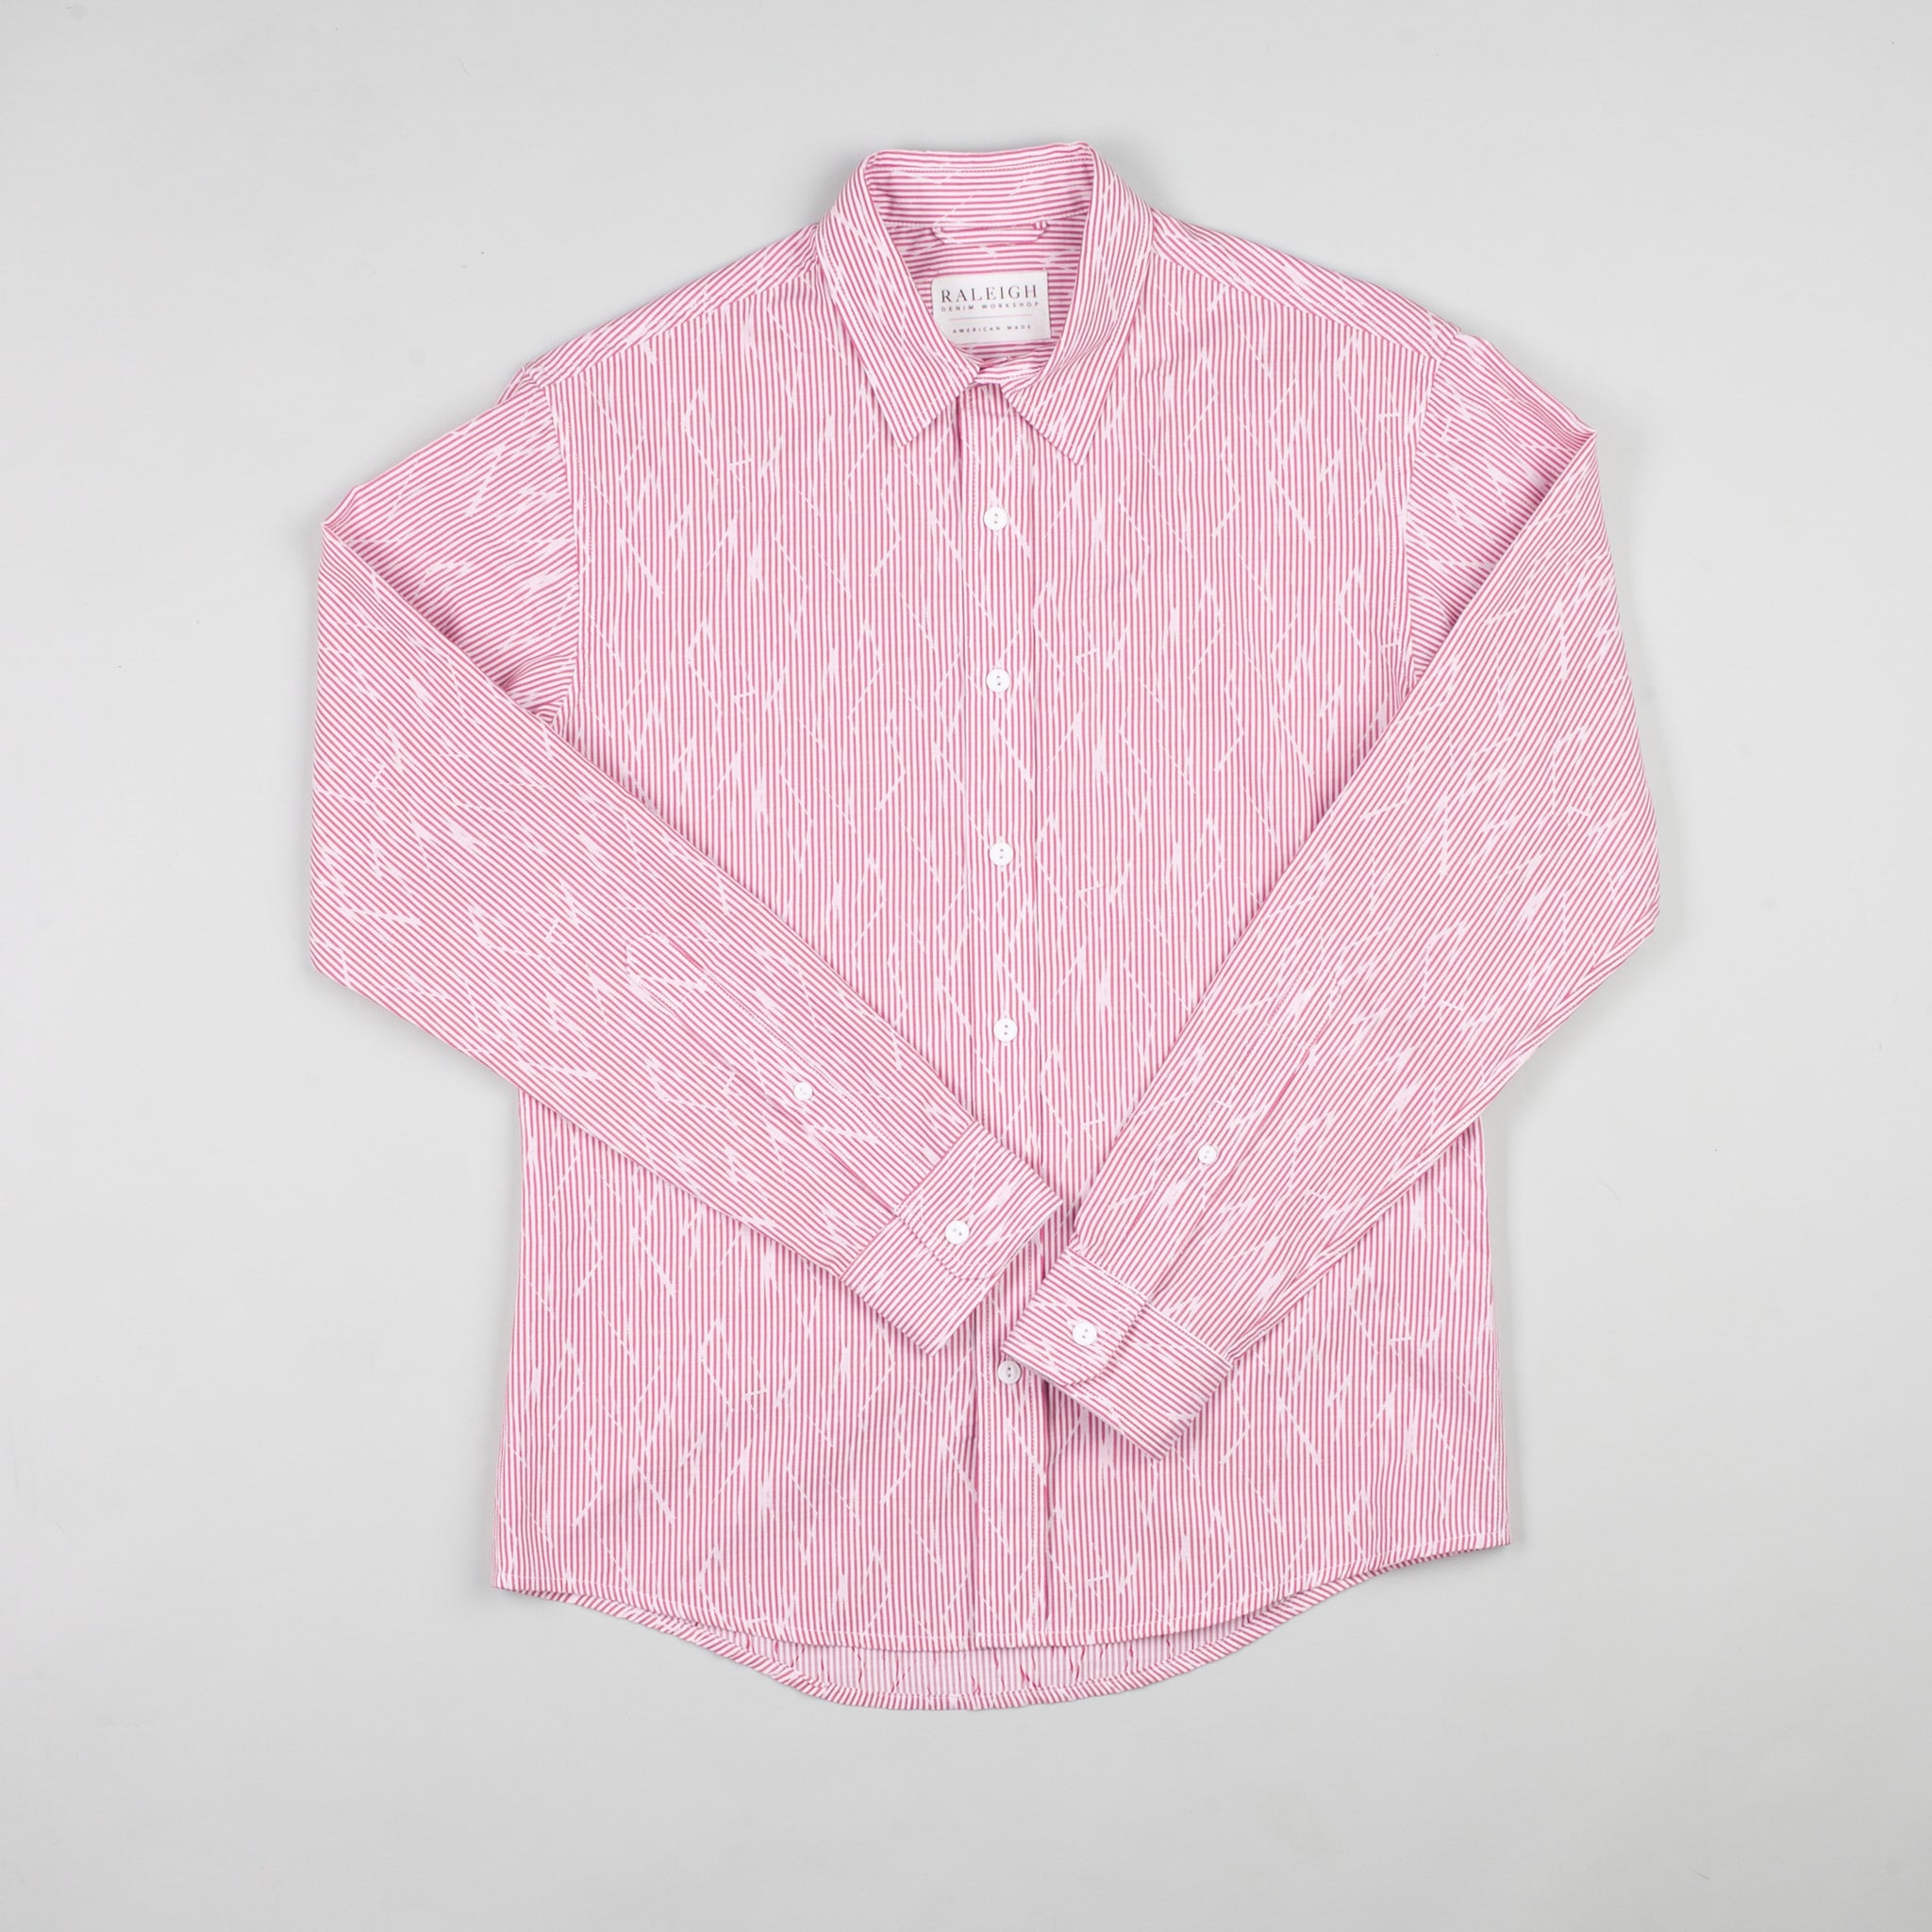 angle hover: voltage  Raleigh Denim Workshop men's classic button-up shirt in red/pink voltage.